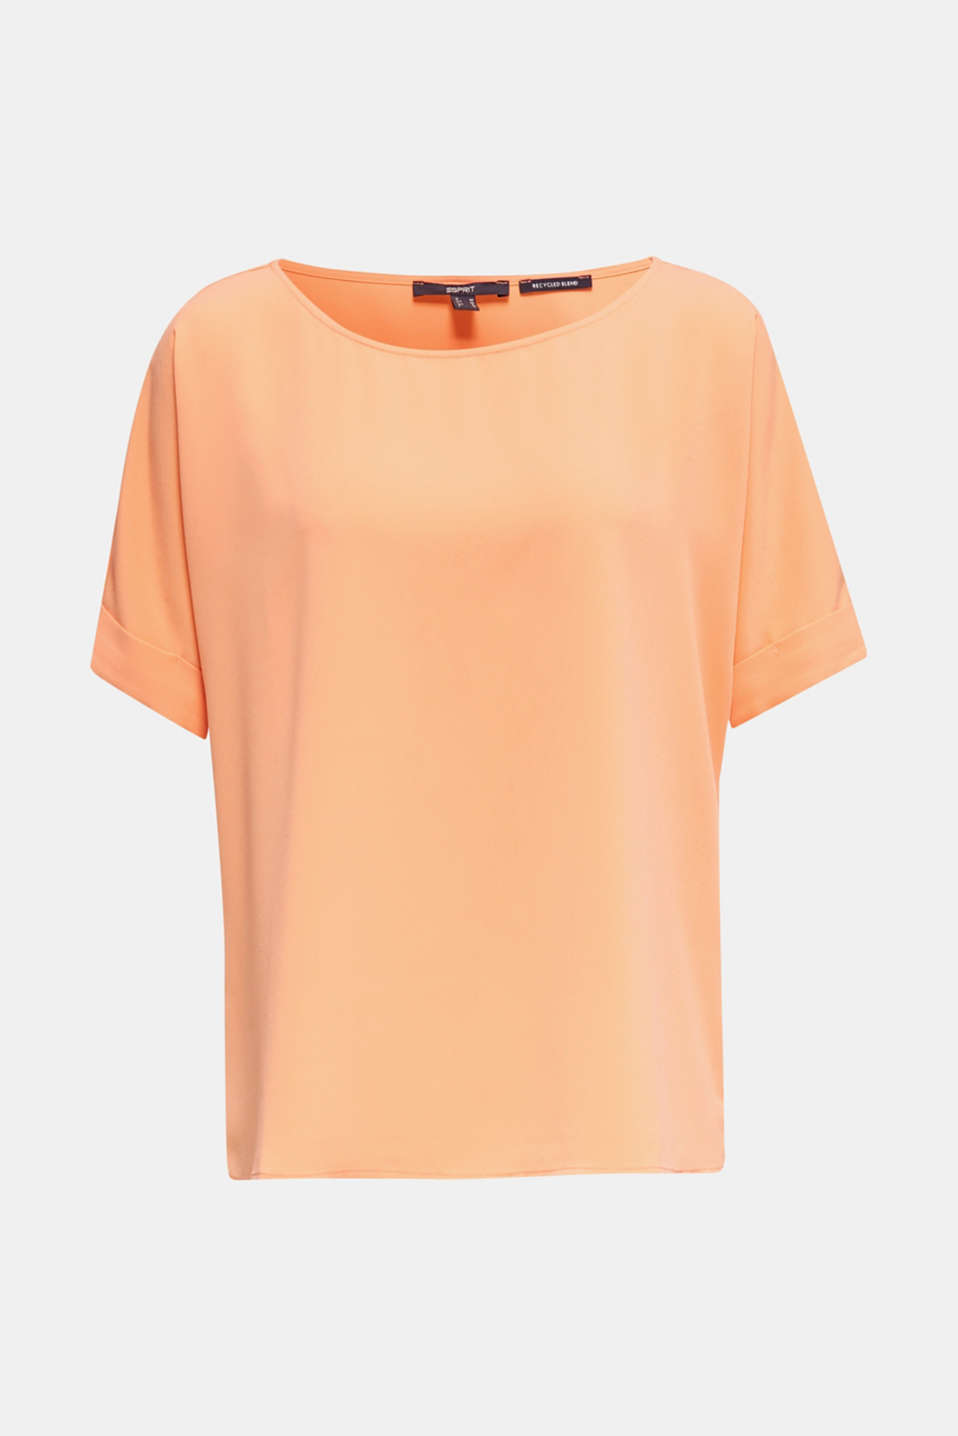 Unembellished blouse top, recycled, ORANGE, detail image number 6